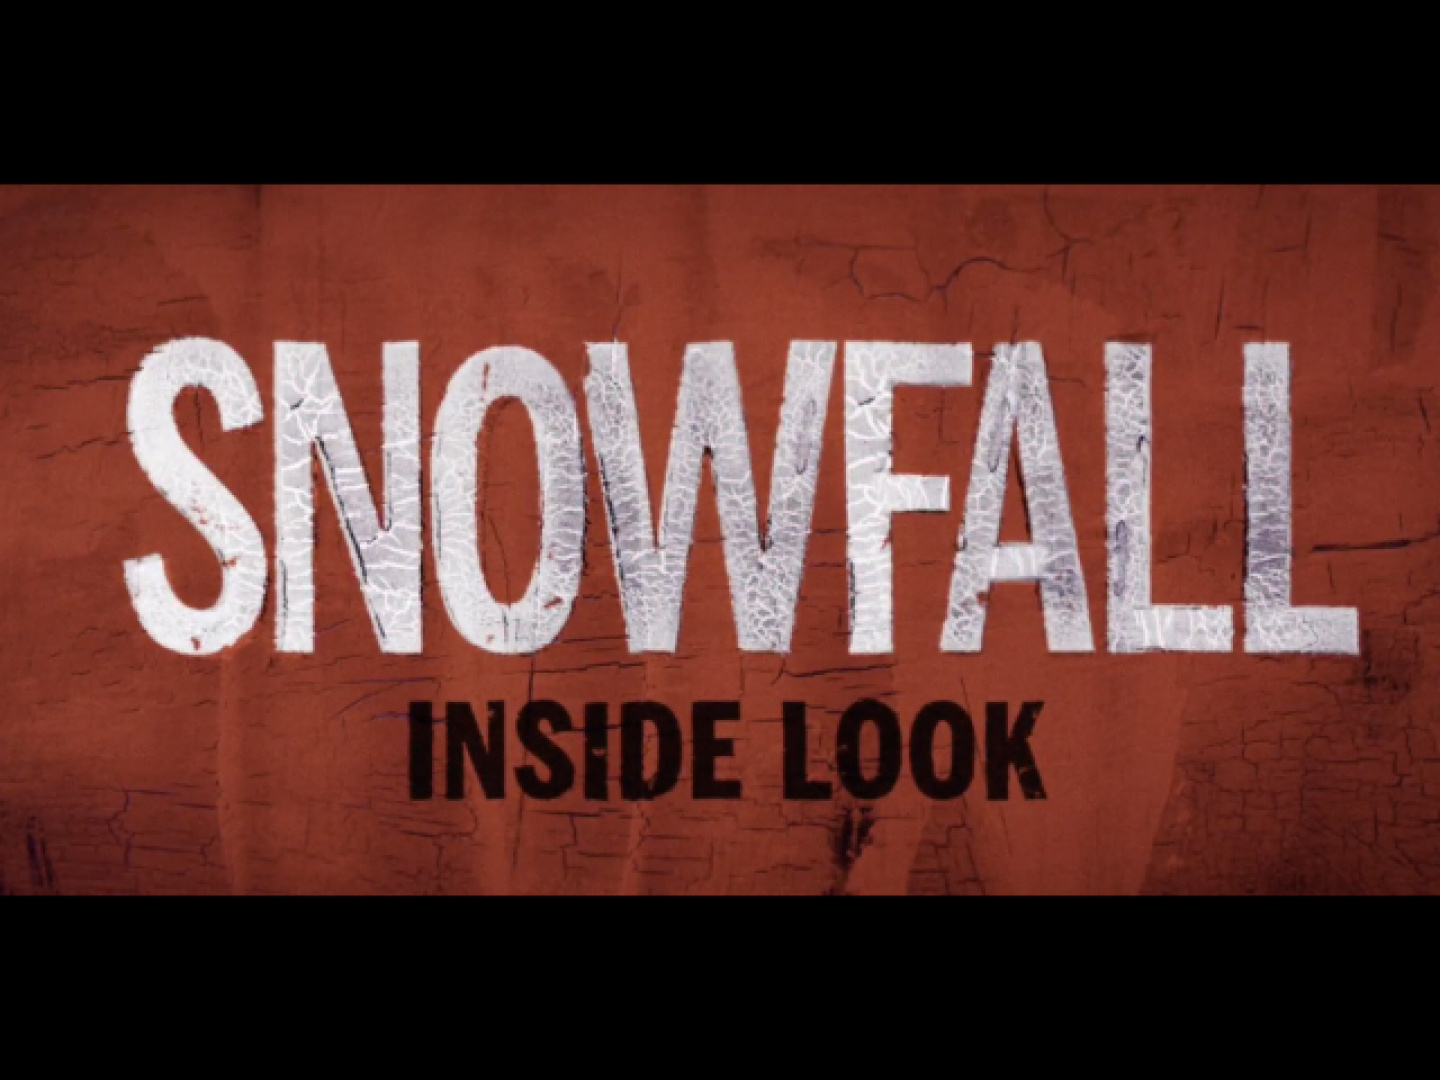 Snowfall S3 - Inside Look: Costa Rica Thumbnail